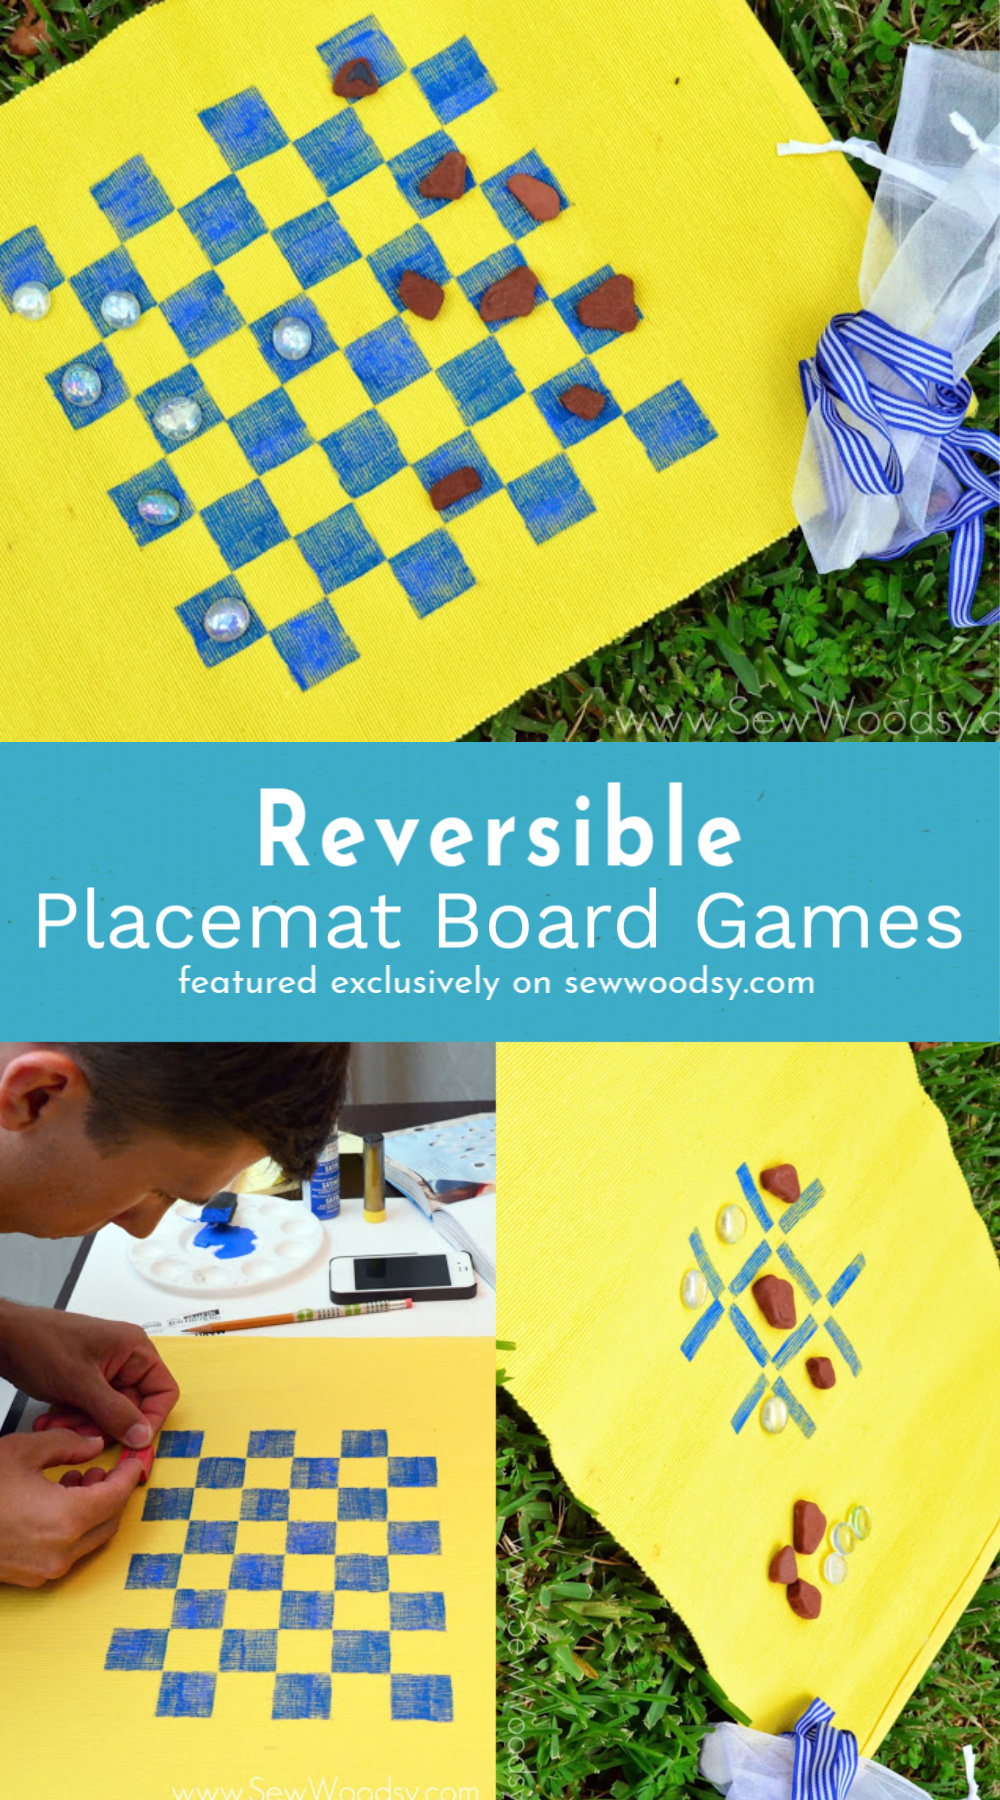 Reversible Placemat Board Games